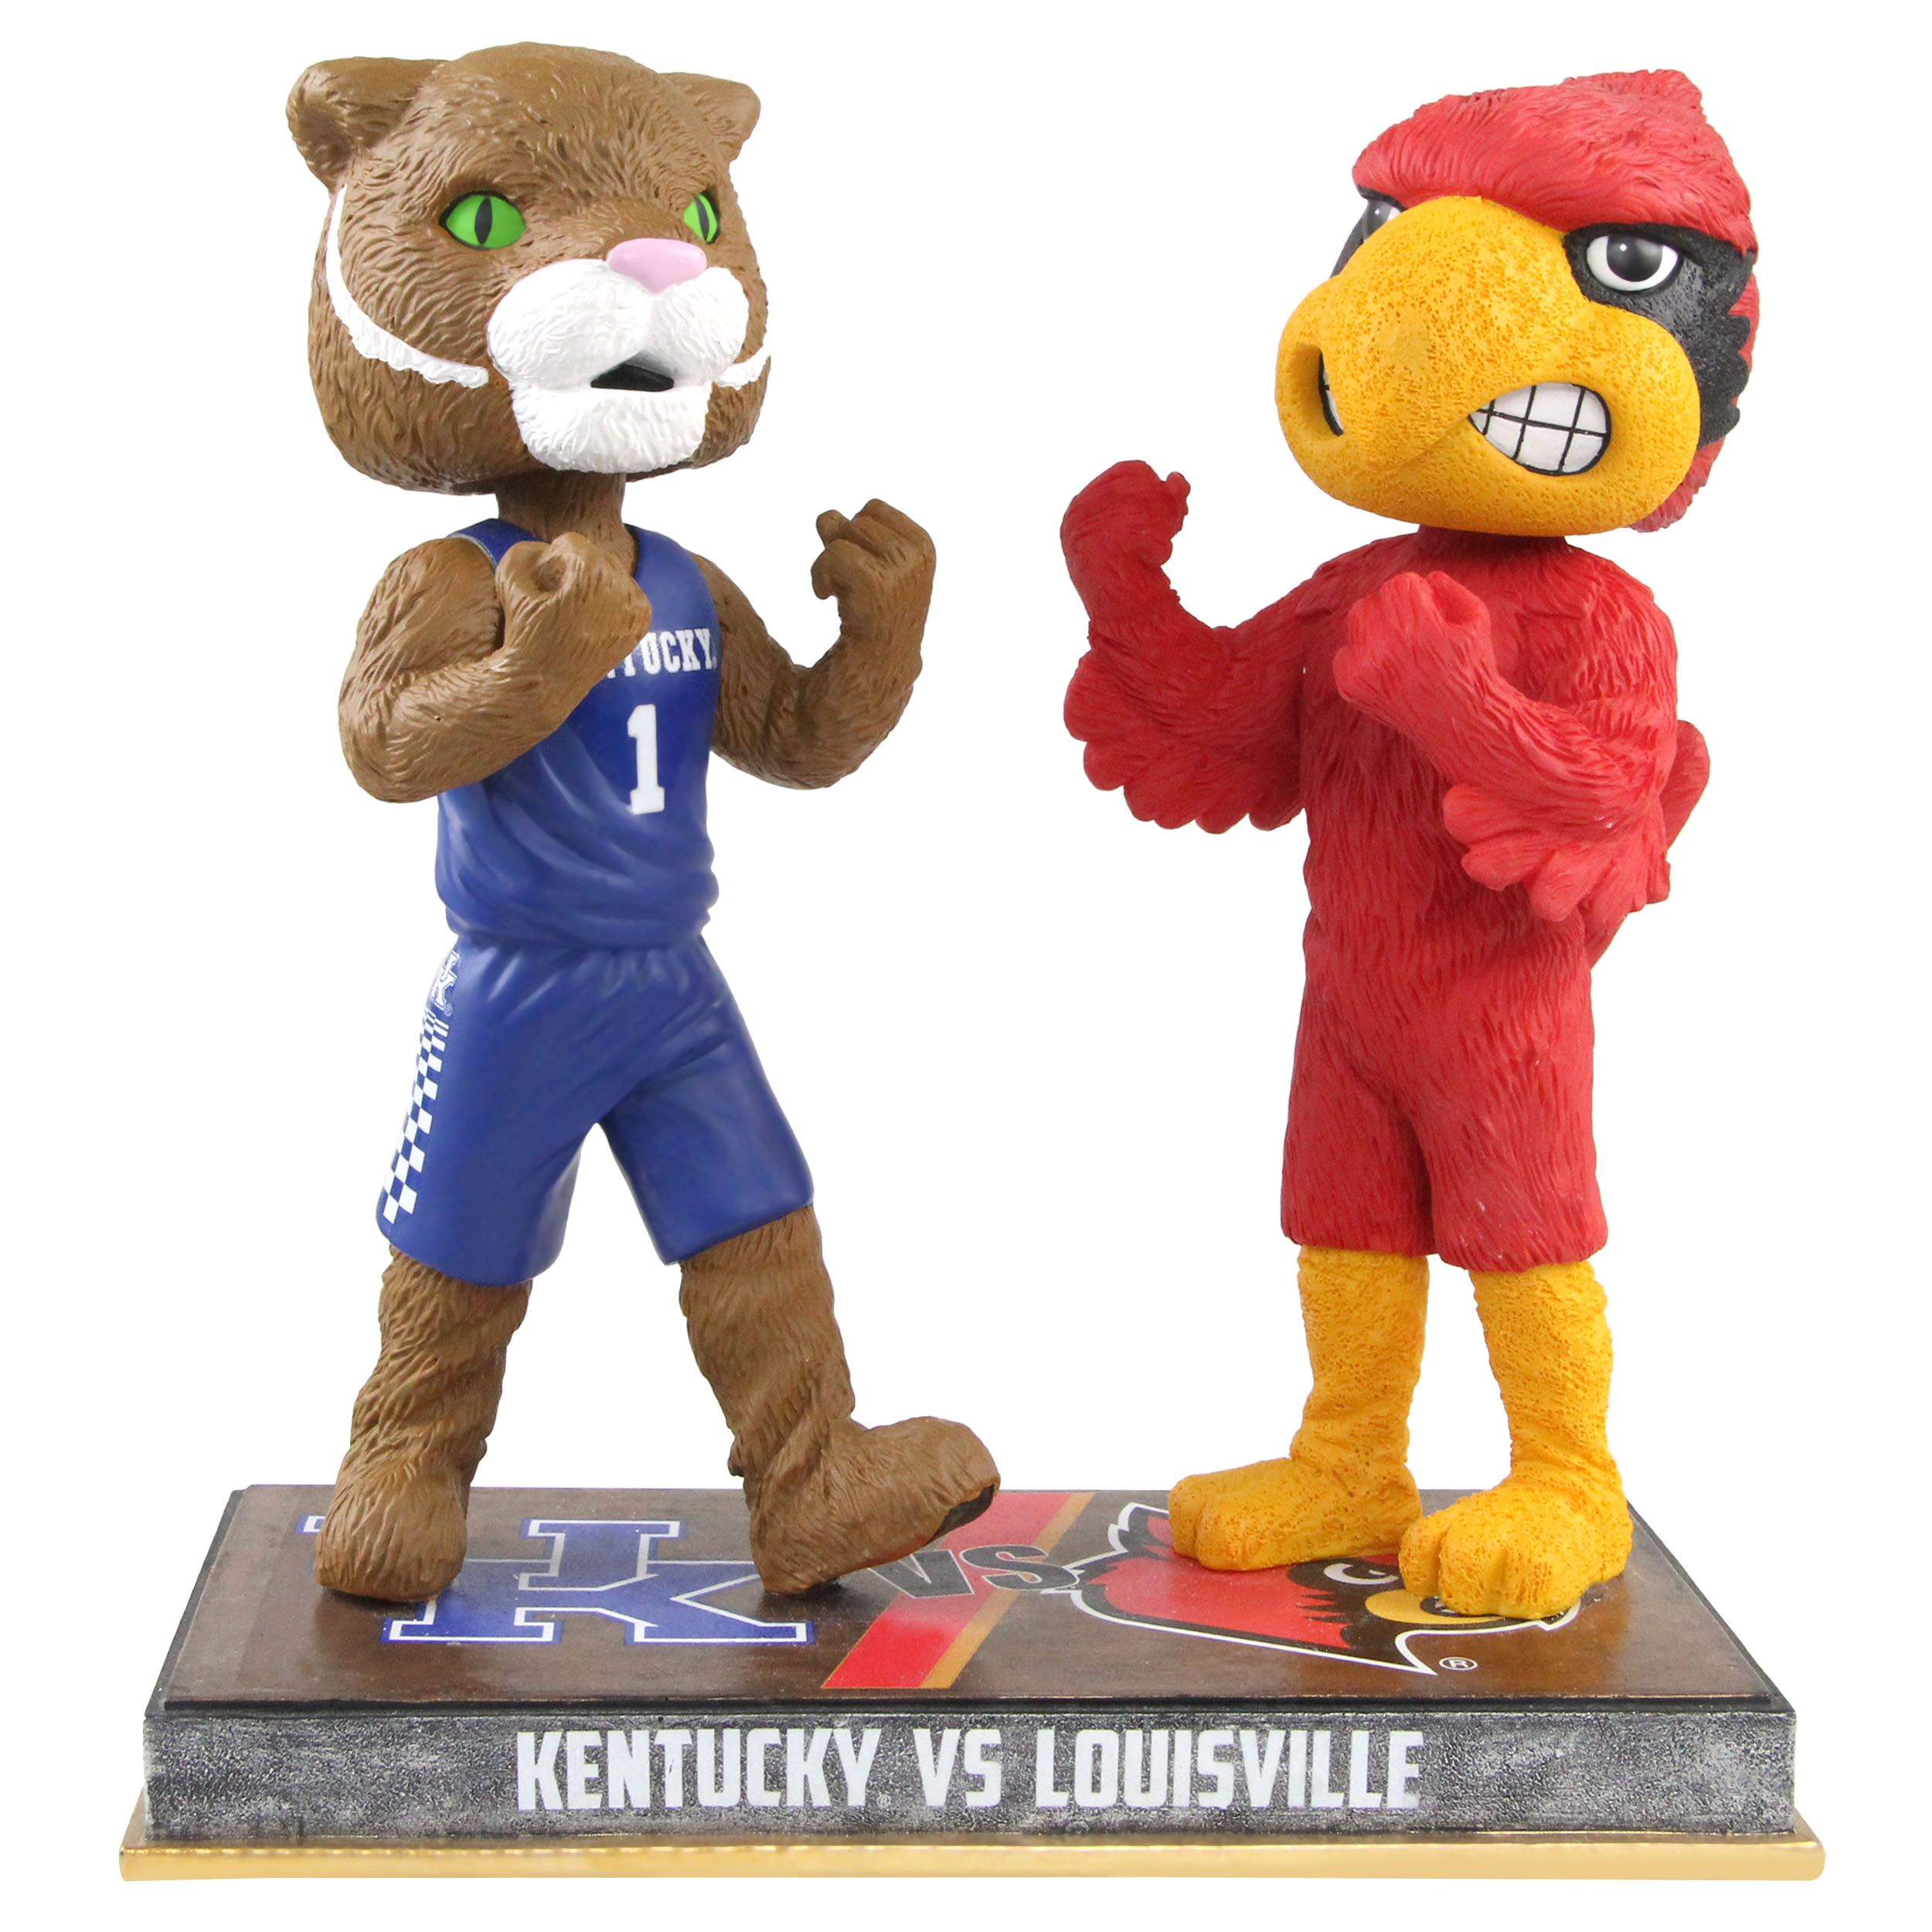 National Bobblehead Hall of Fame to feature Kentucky